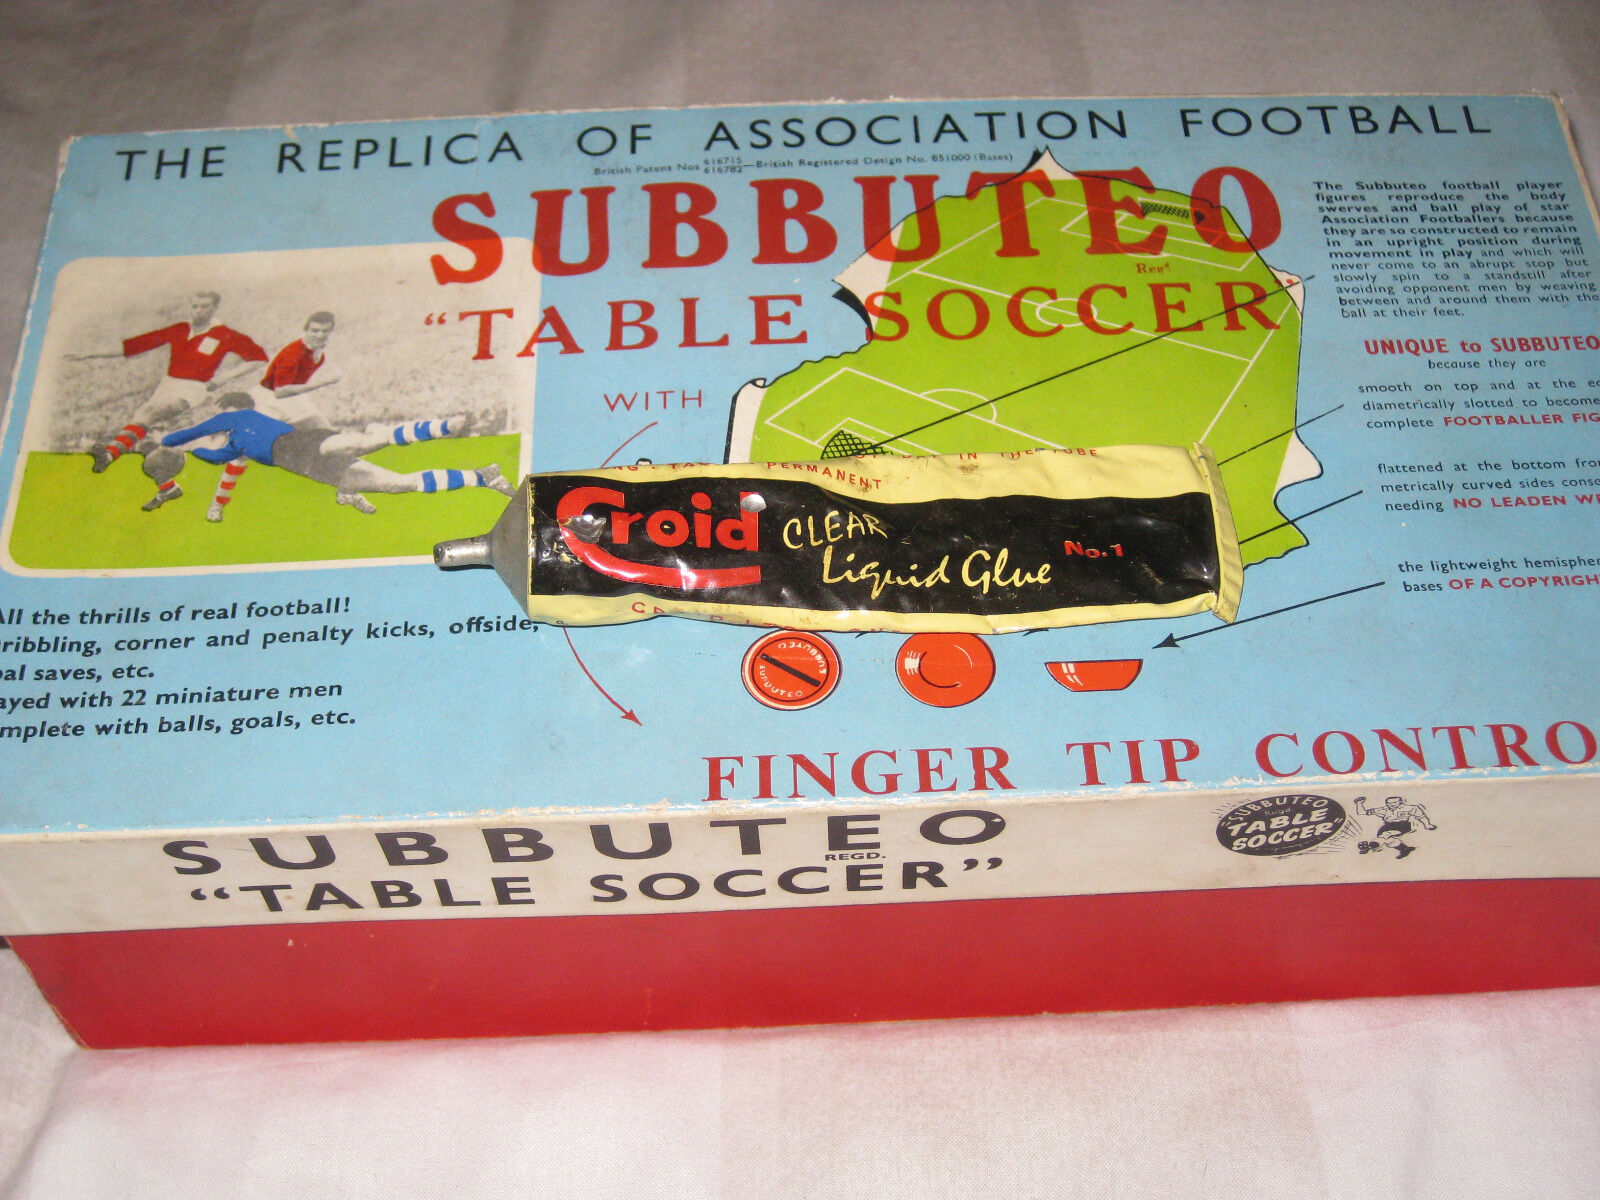 Subbuteo-Table Football Set-Vintage-1950's-bluee Top Set Plus-Very Good Condition